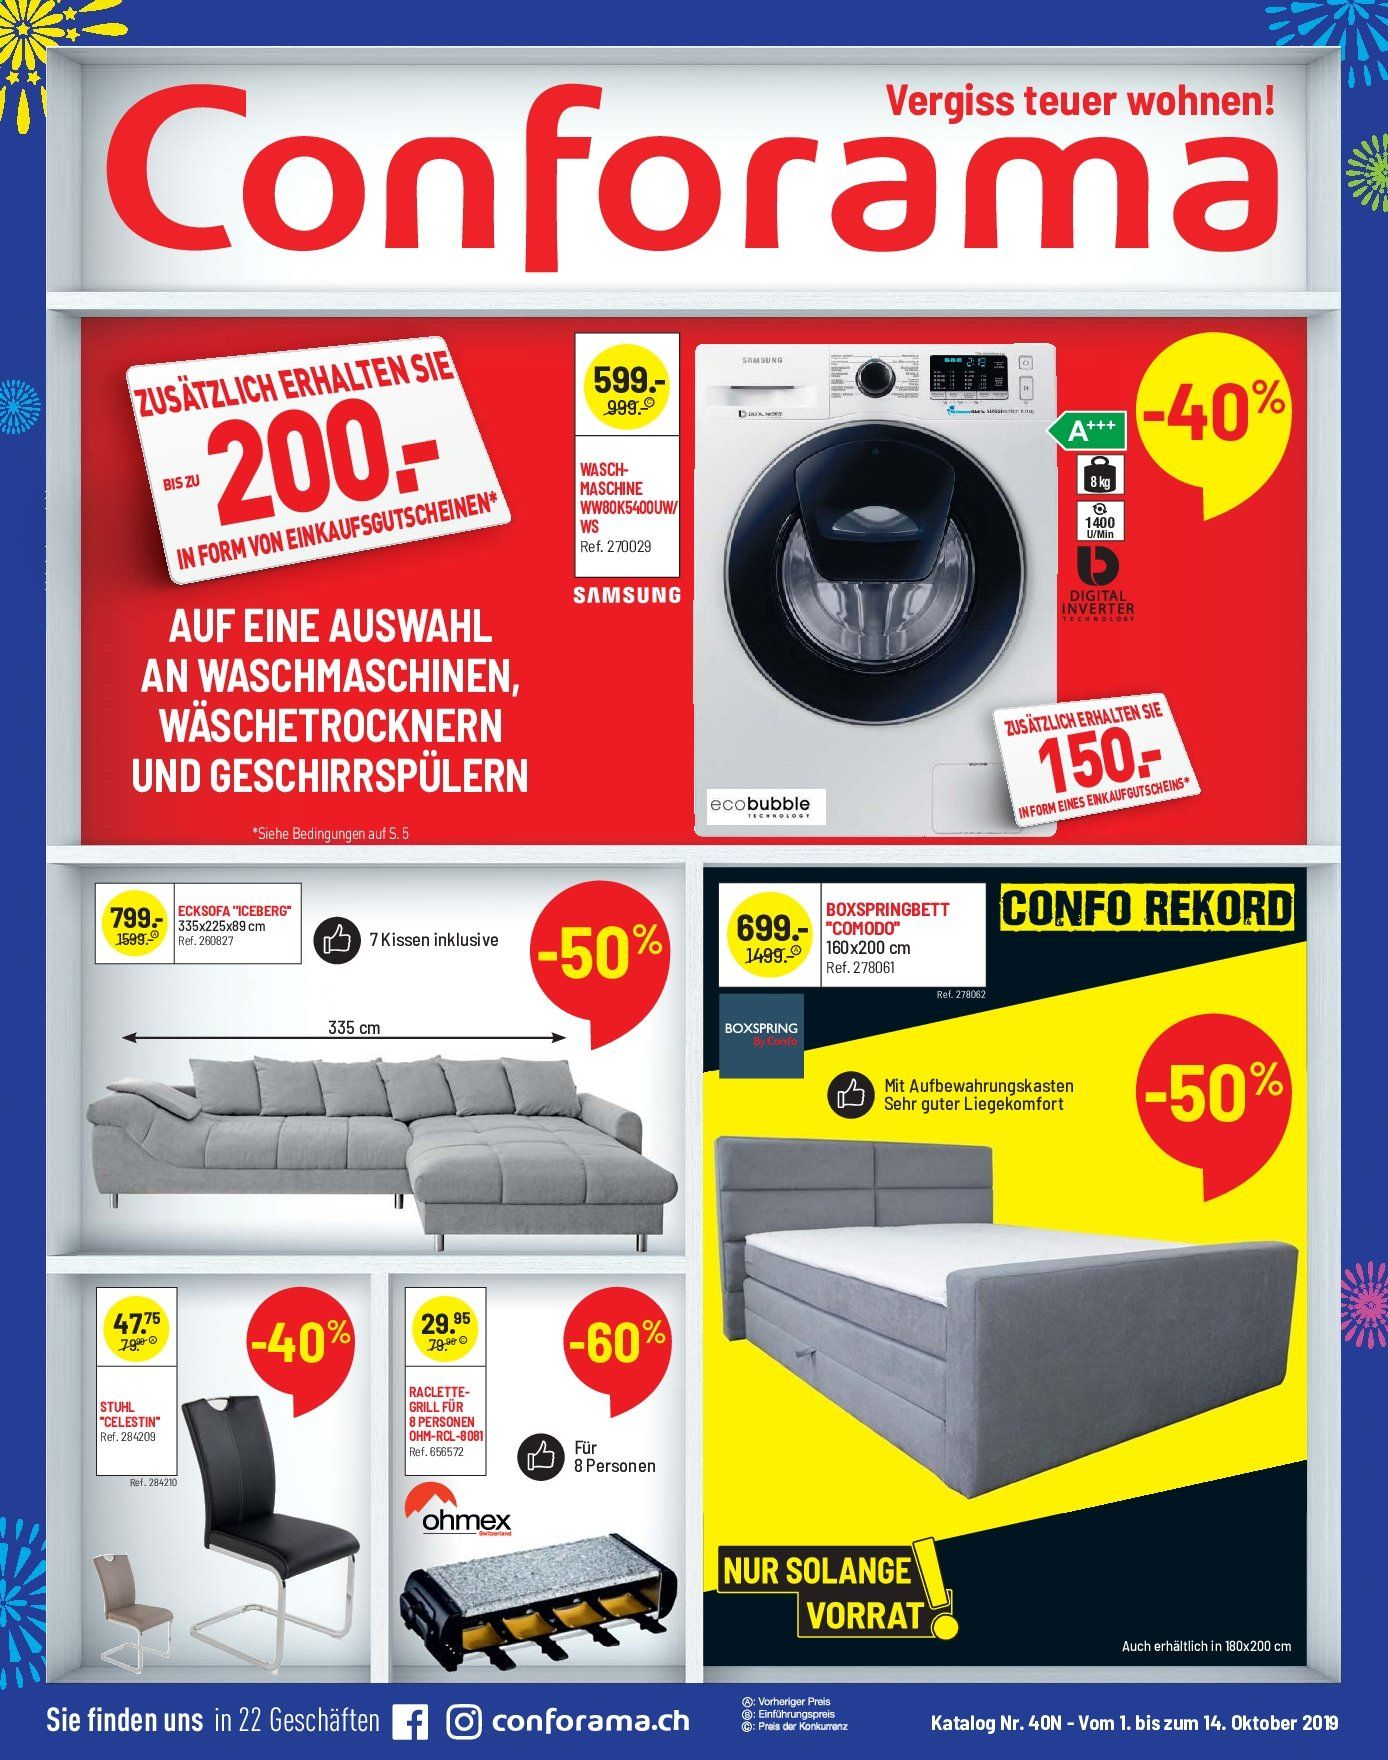 Catalogue Conforama 1.10.2019 - 14.10.2019 | Rabatt-kompass.ch